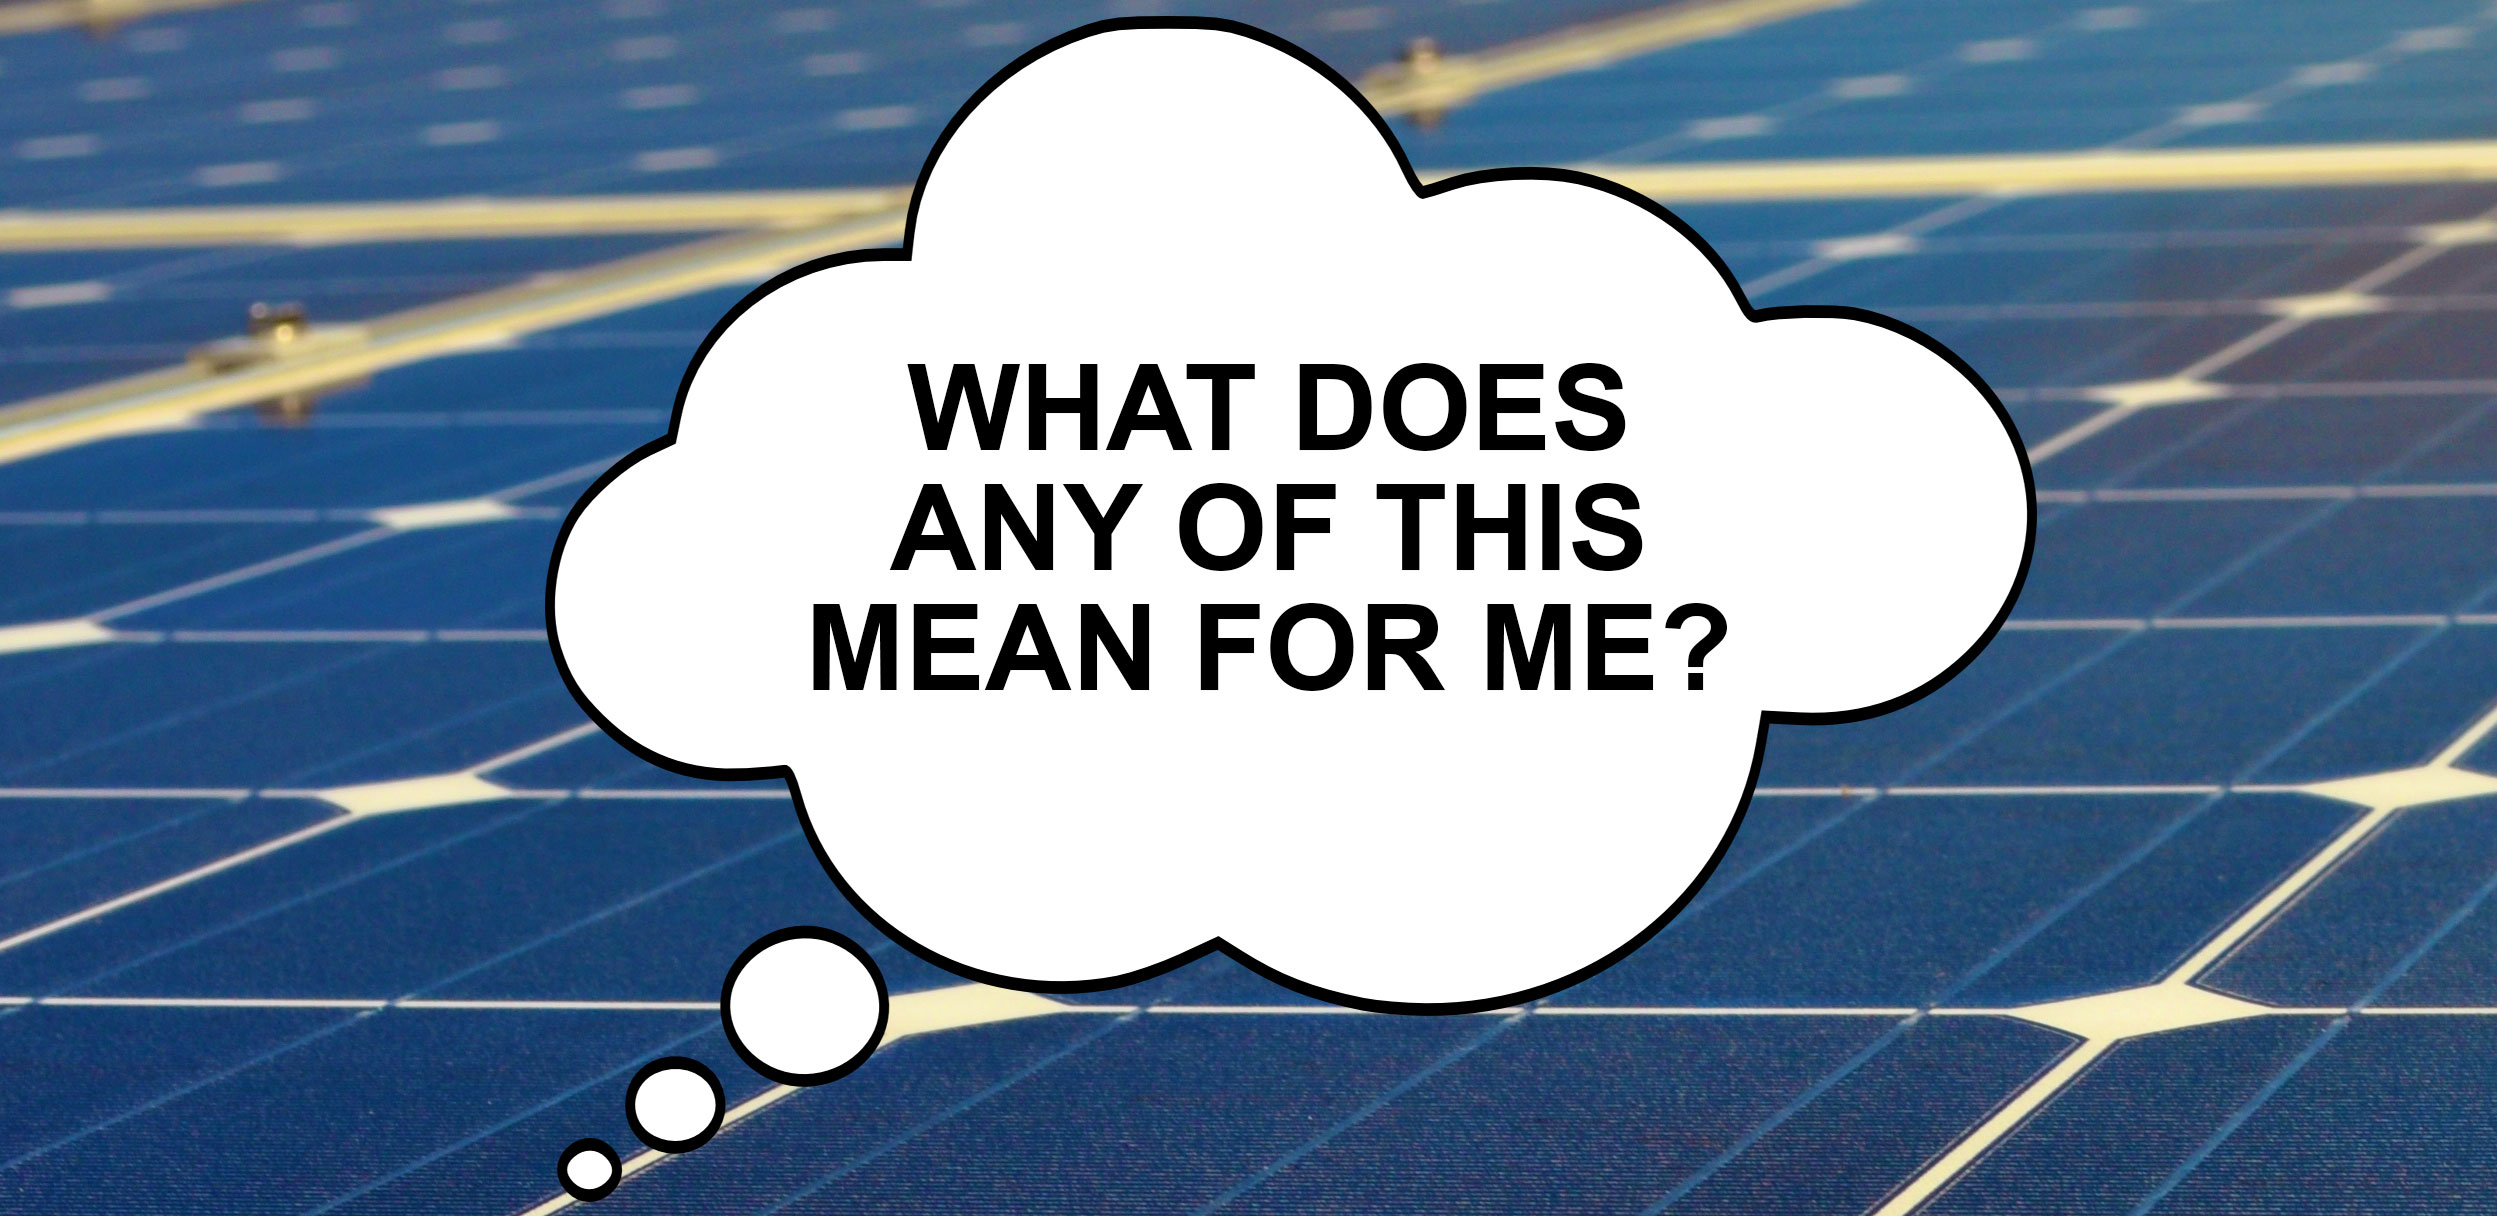 What does this talk of Alabama solar mean to me?